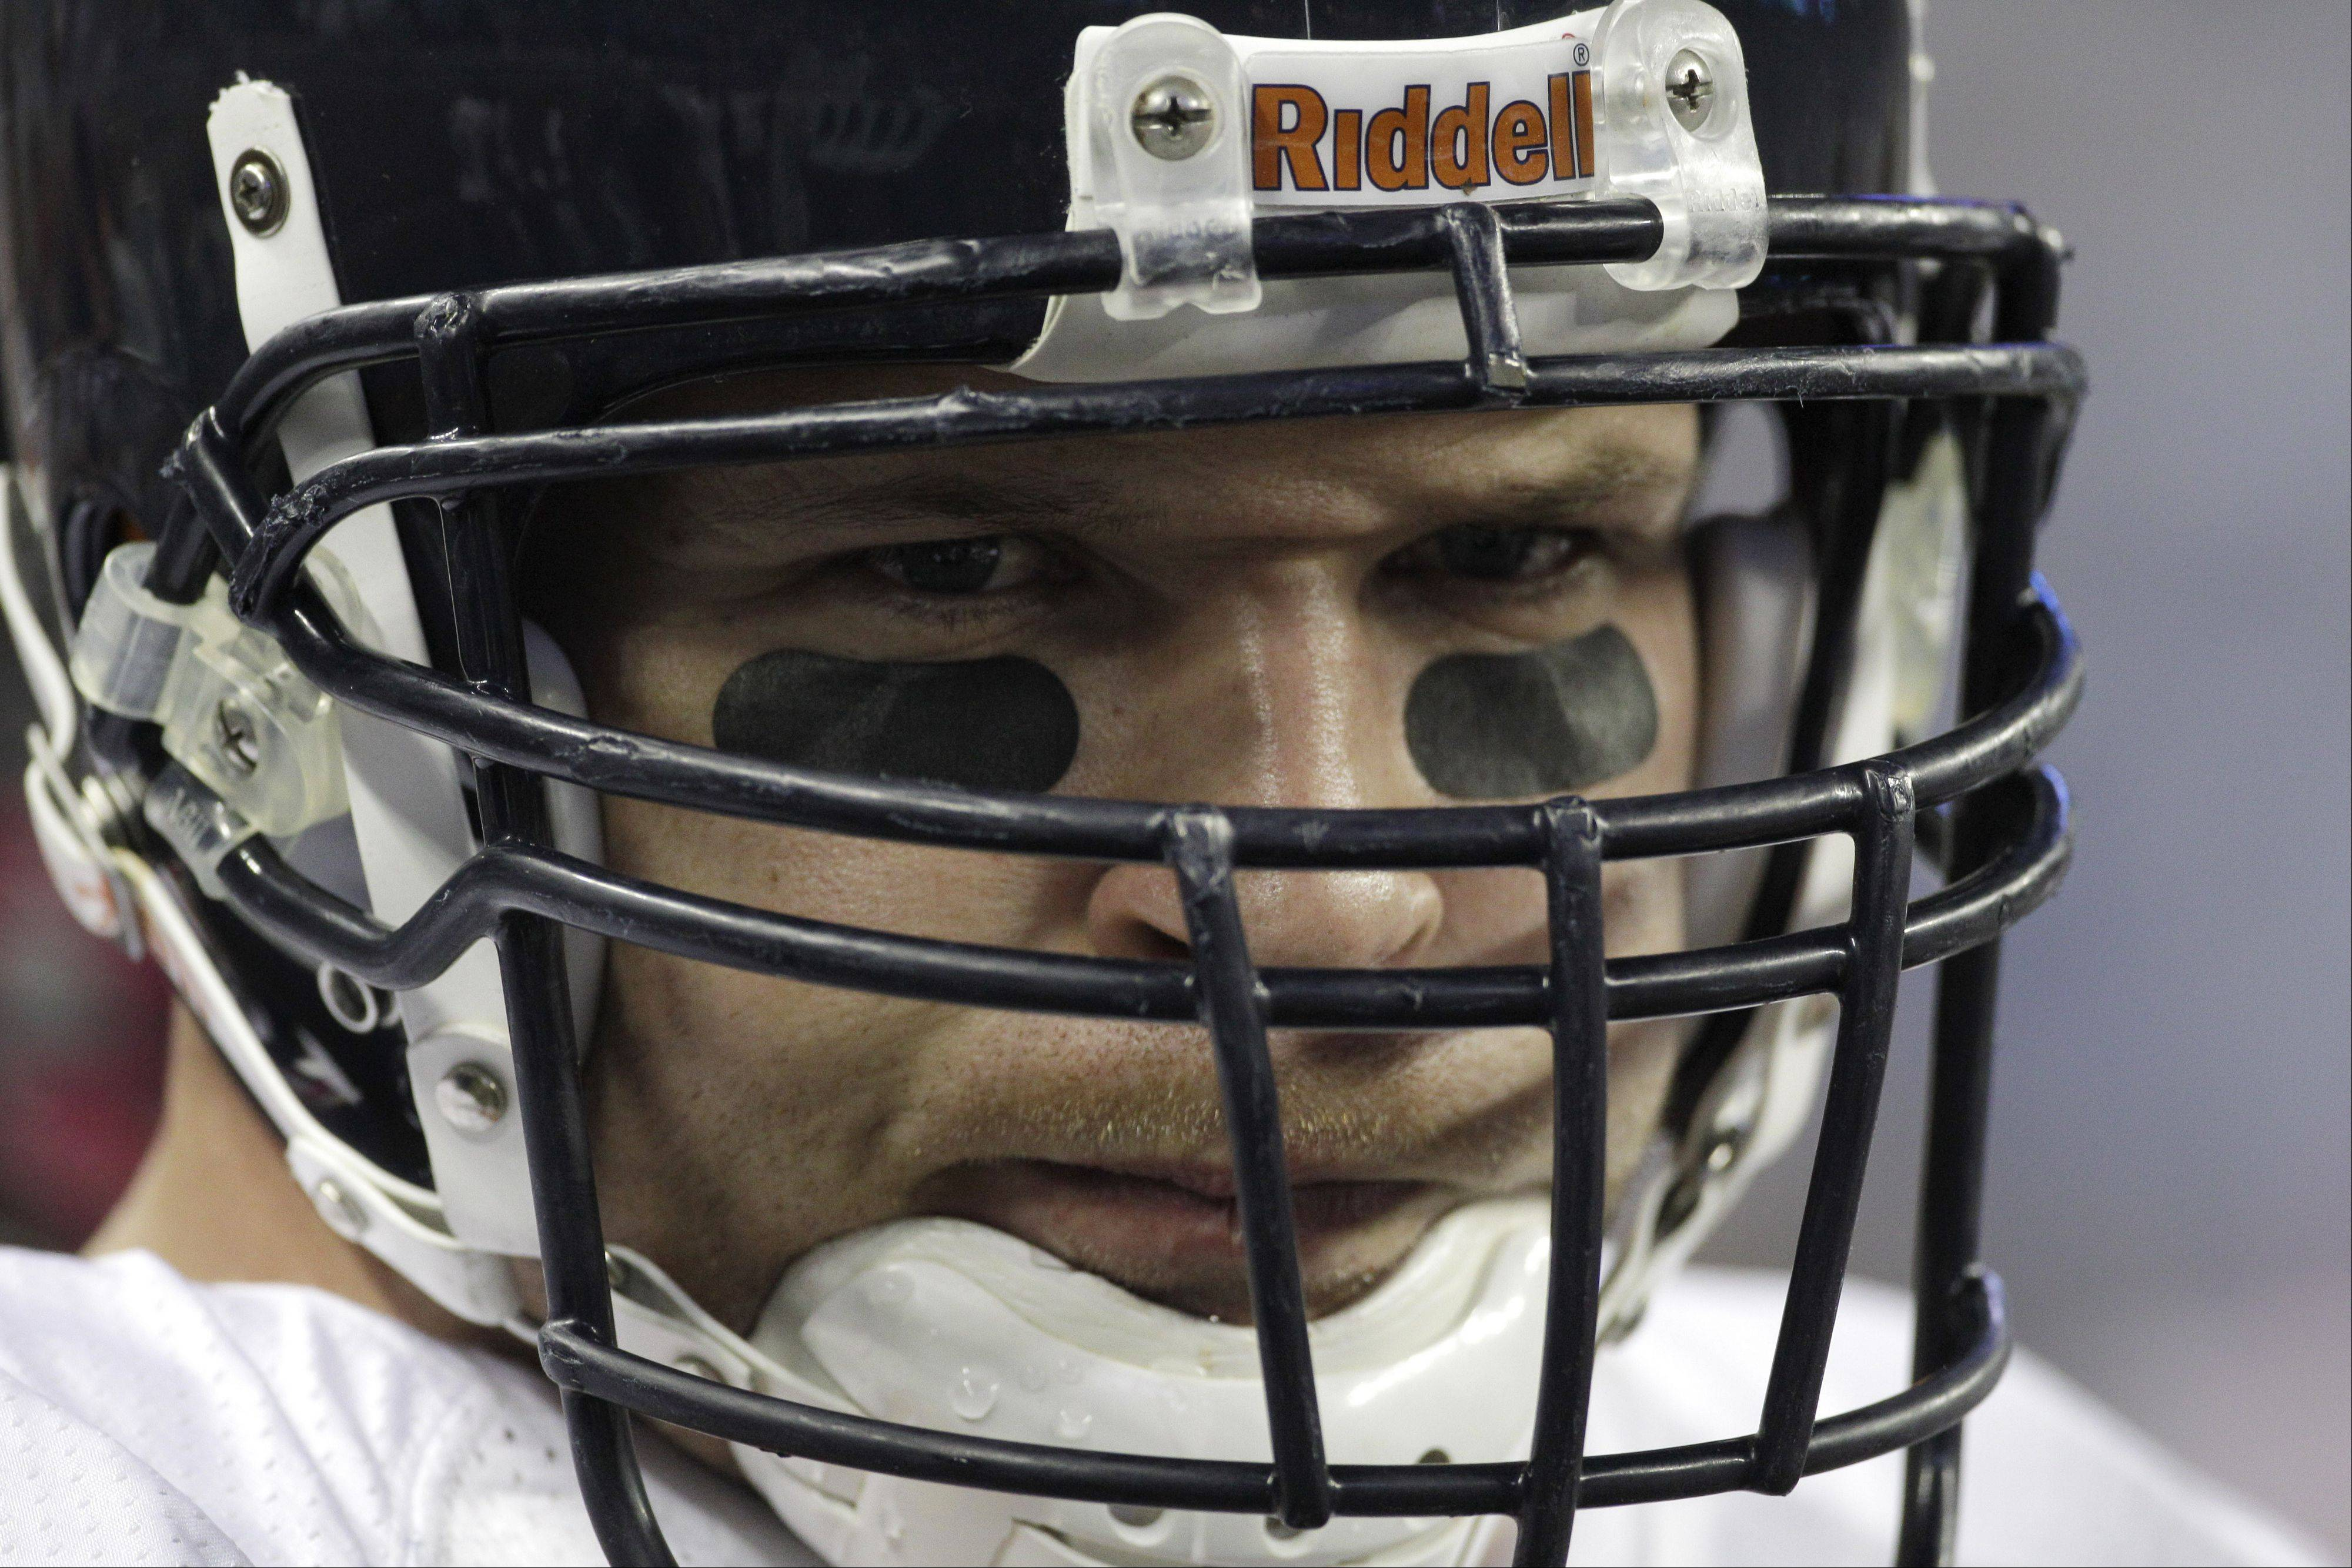 Urlacher great player but difficult to embrace